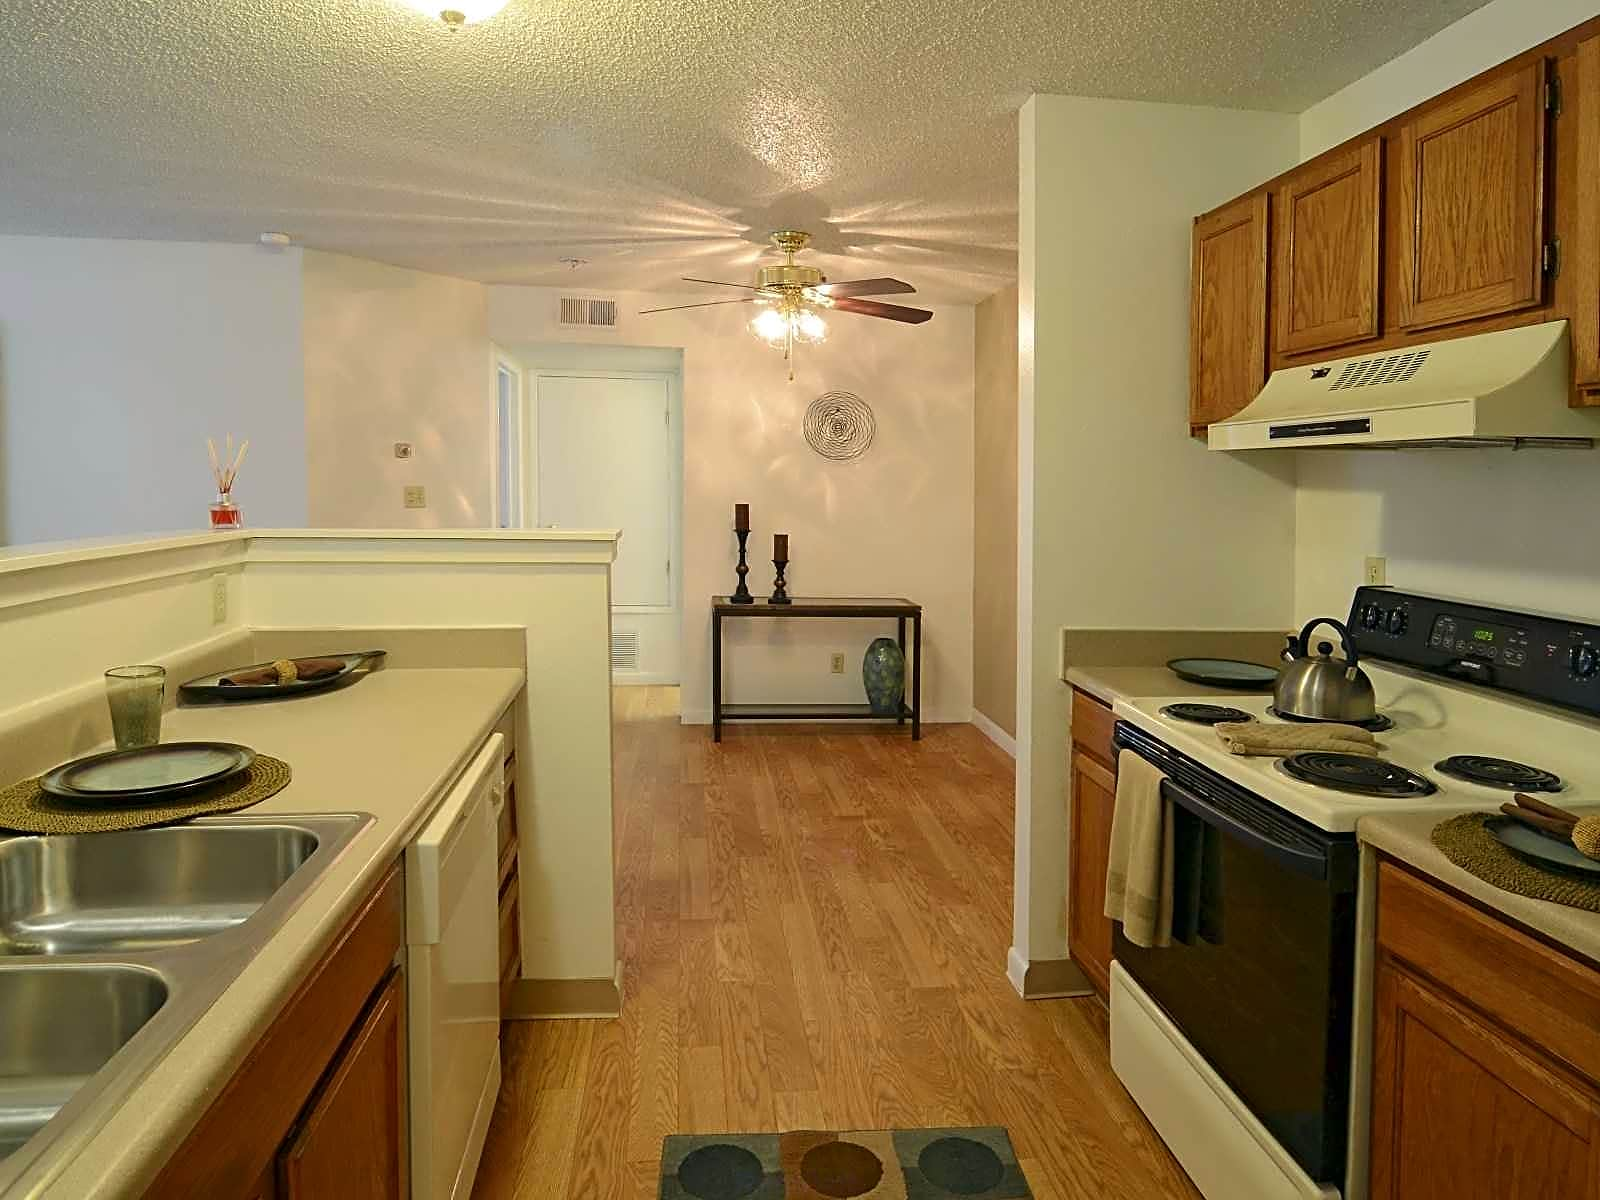 Apartments Near CSF-ABQ Sunchase for College of Santa Fe at Albuquerque Students in Albuquerque, NM